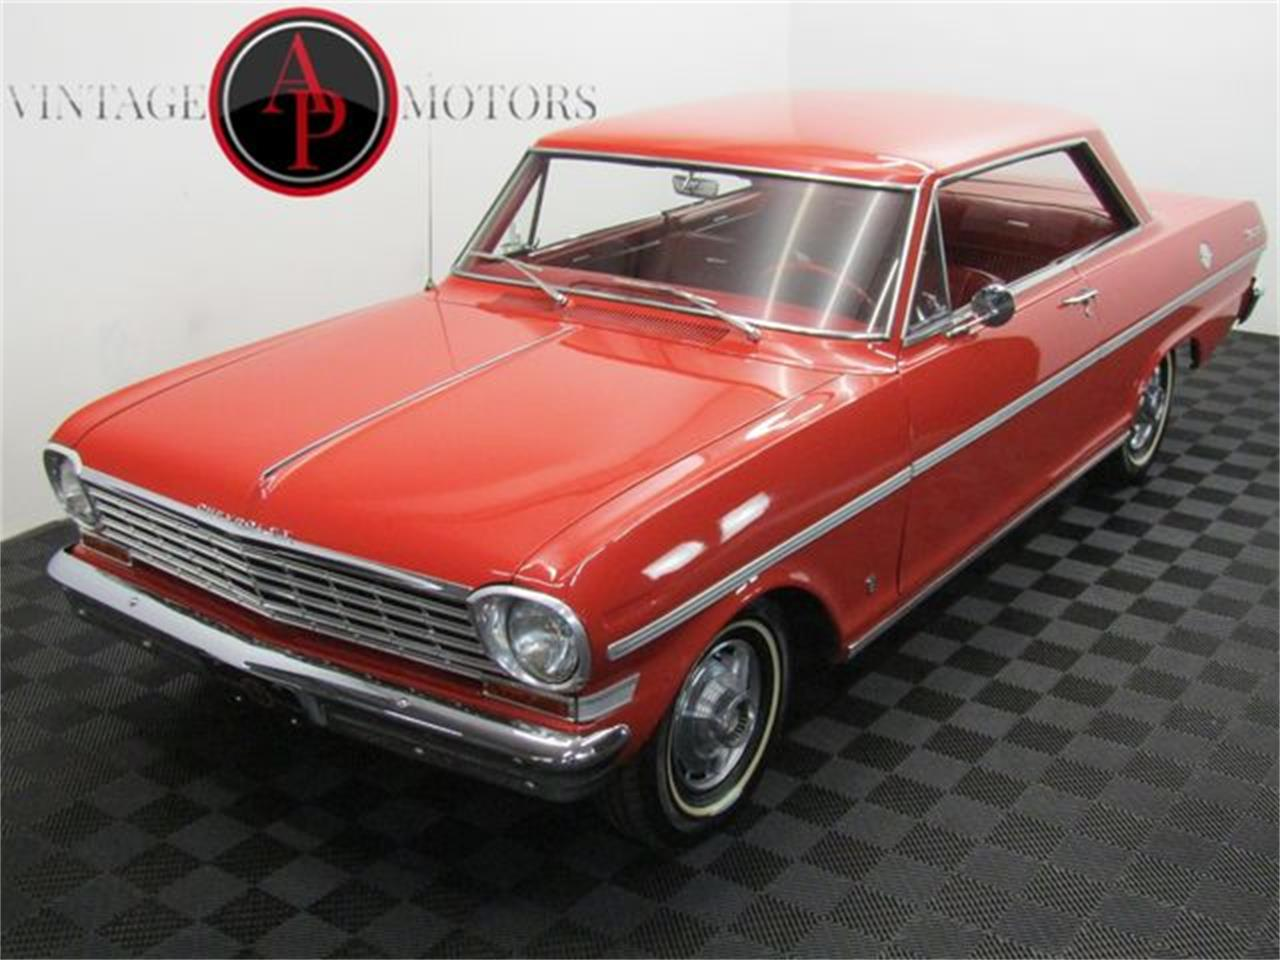 Large Picture of '63 Chevrolet Nova located in North Carolina Offered by AP Vintage Motors - PX7S